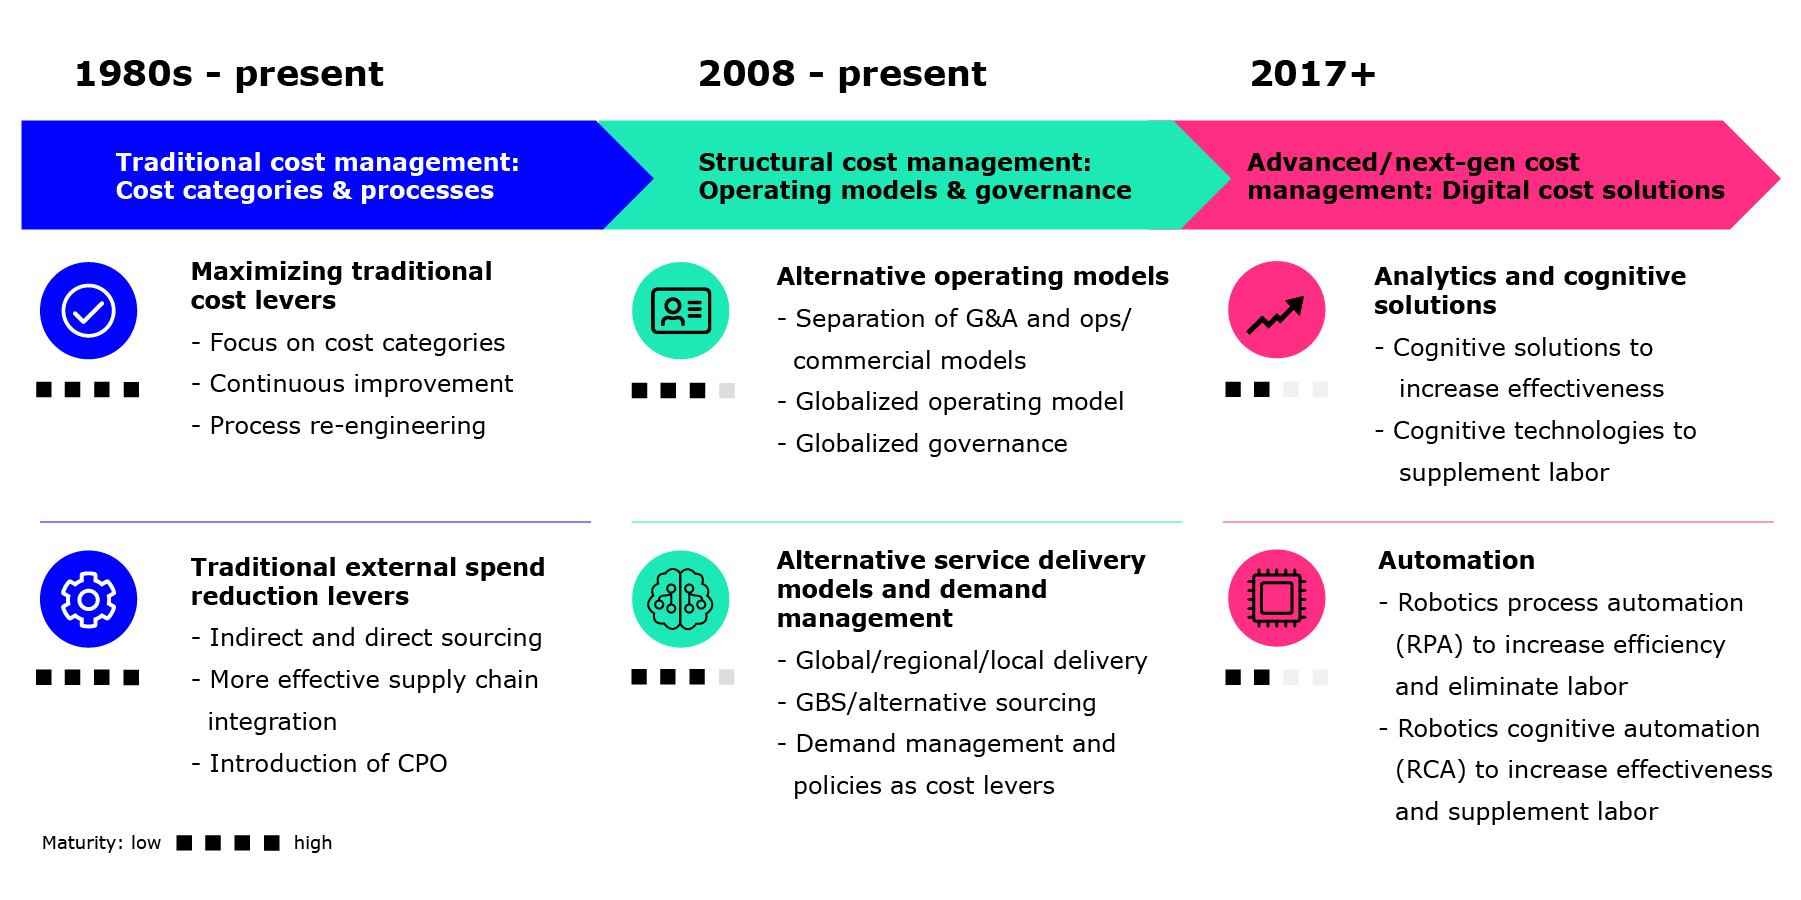 Diagram shows the evolution of cost management from 1980s - present: Traditional cost management: Cost categories & processes. 2008 - present: Structural cost management: Operating models & governance. 2017+: Advance/ next-gen cost management: Digital cost solutions.